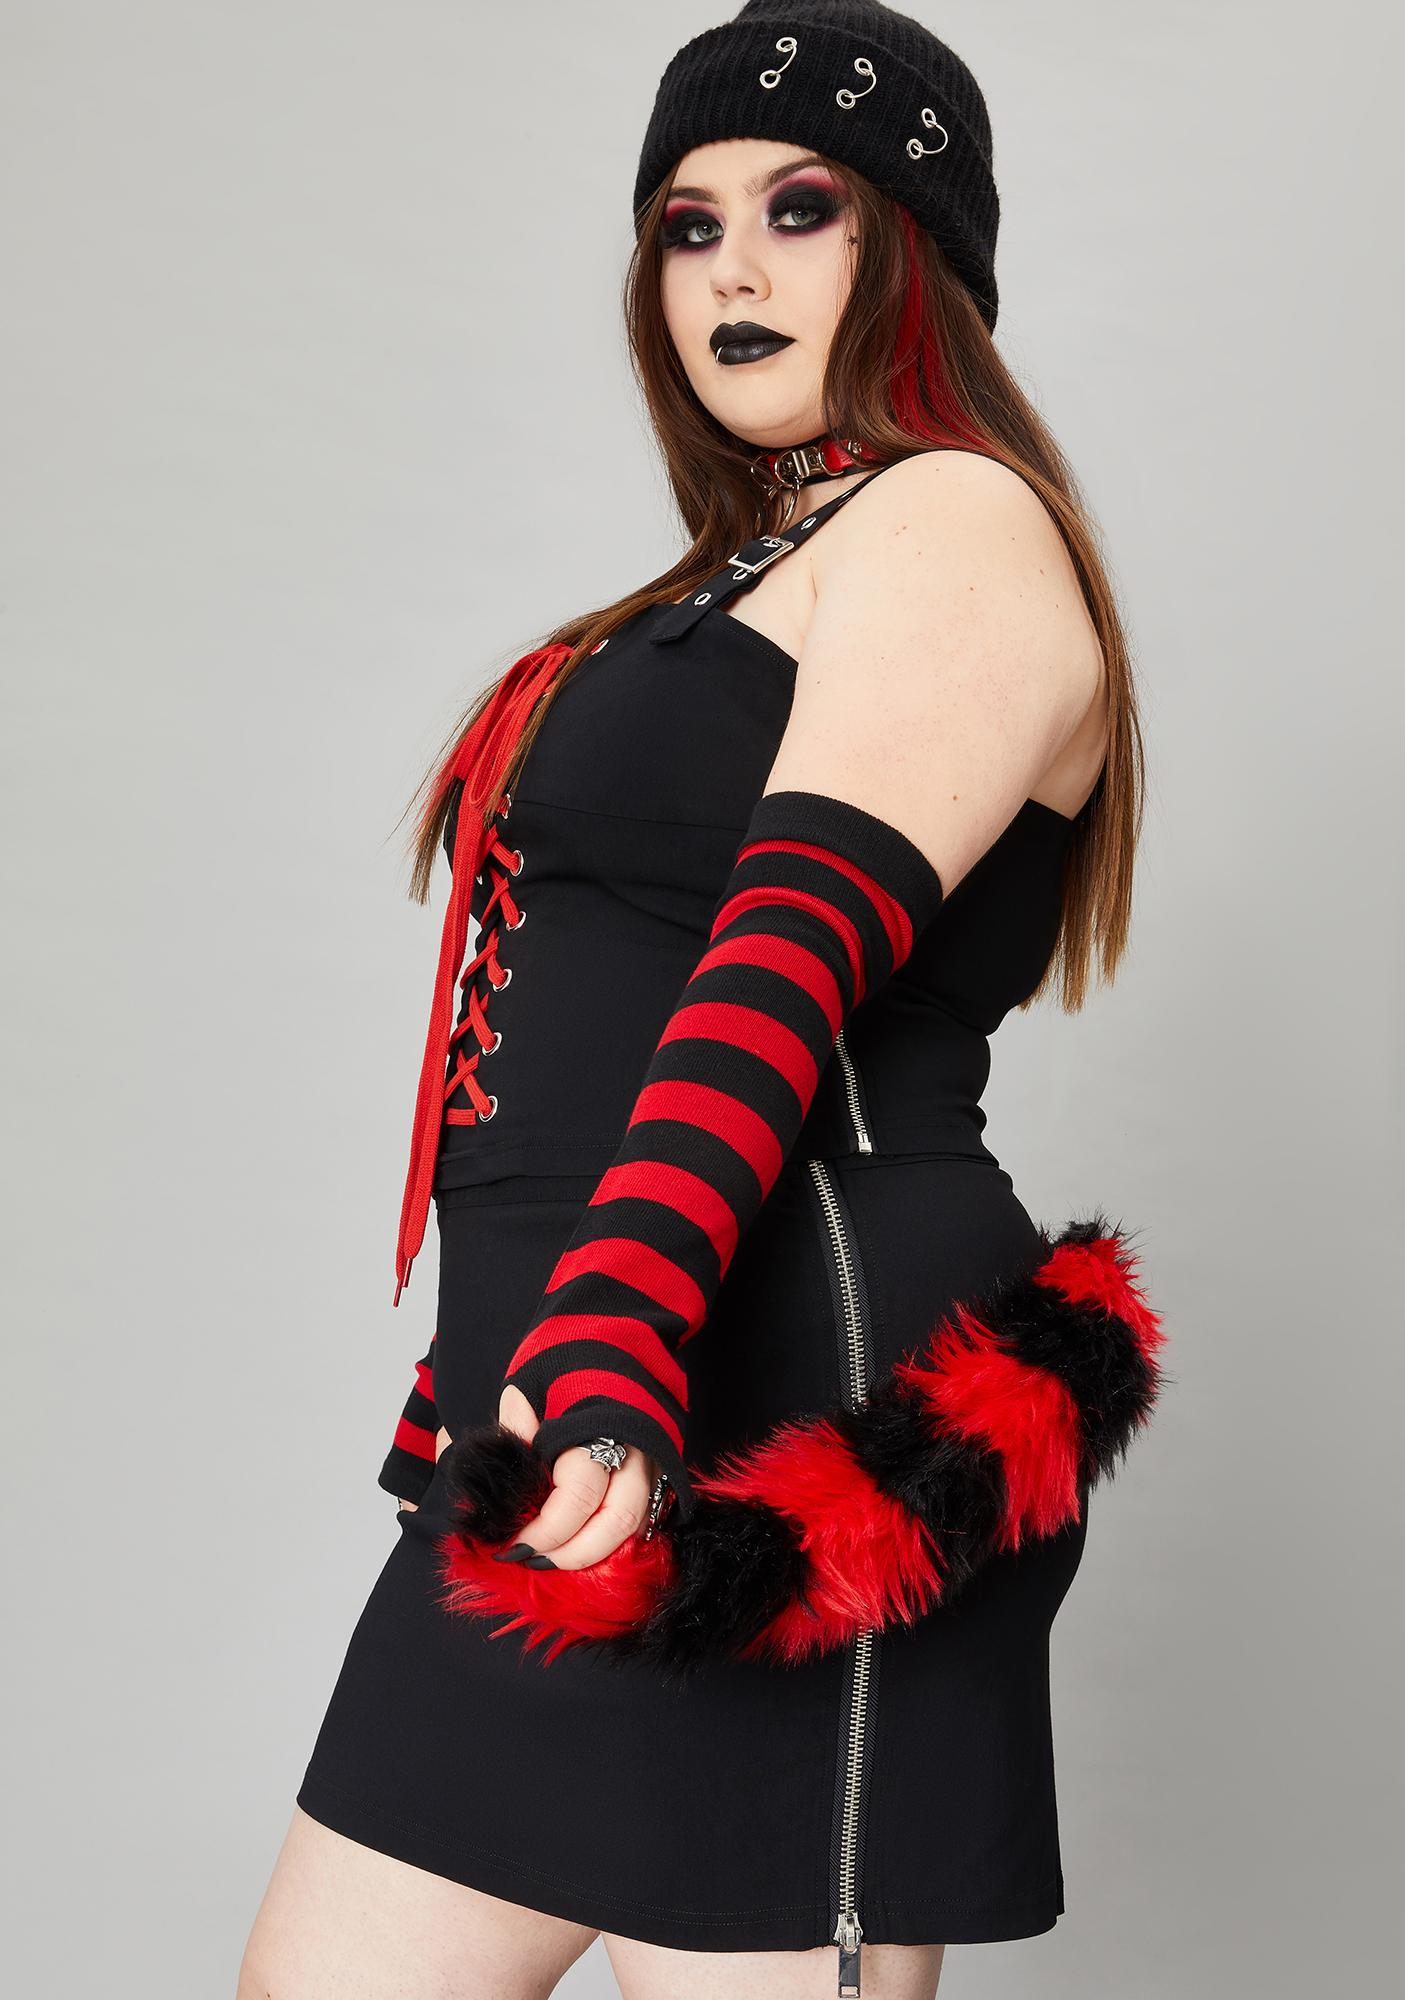 Widow Real Scene Queen Skirt And Sleeves Set